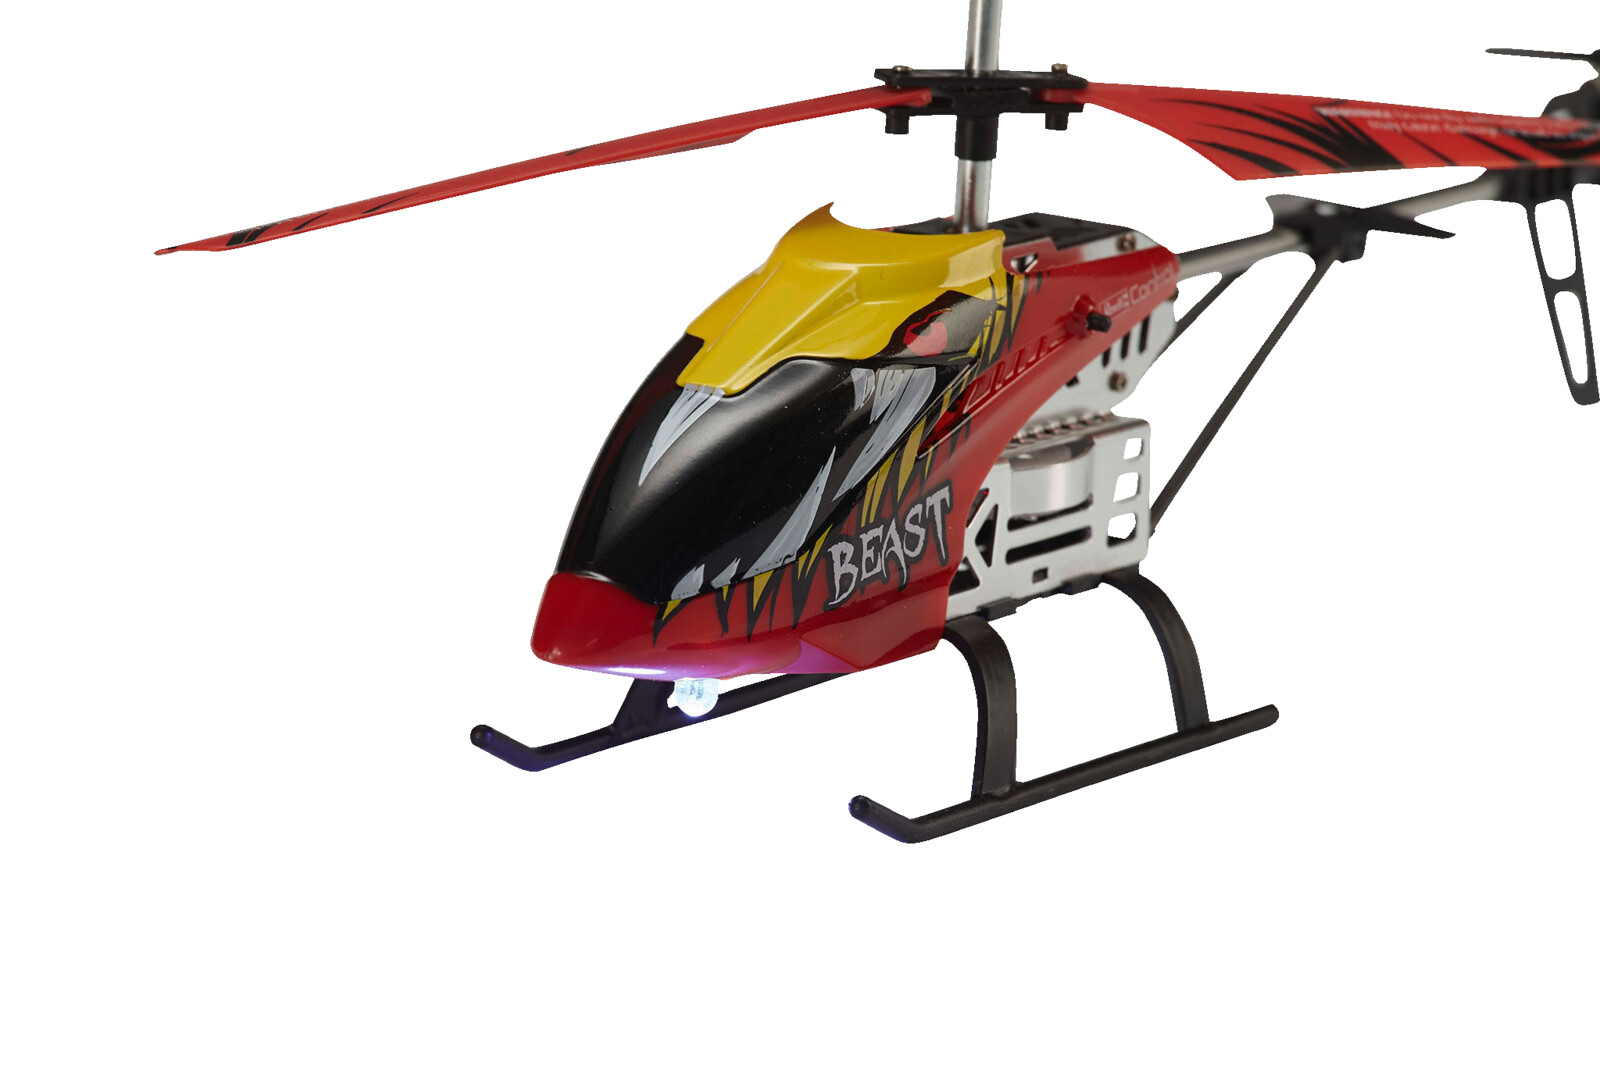 REVELL 23891 Helicopter Beast RC Helikopter Rot/Multicolor | eBay on